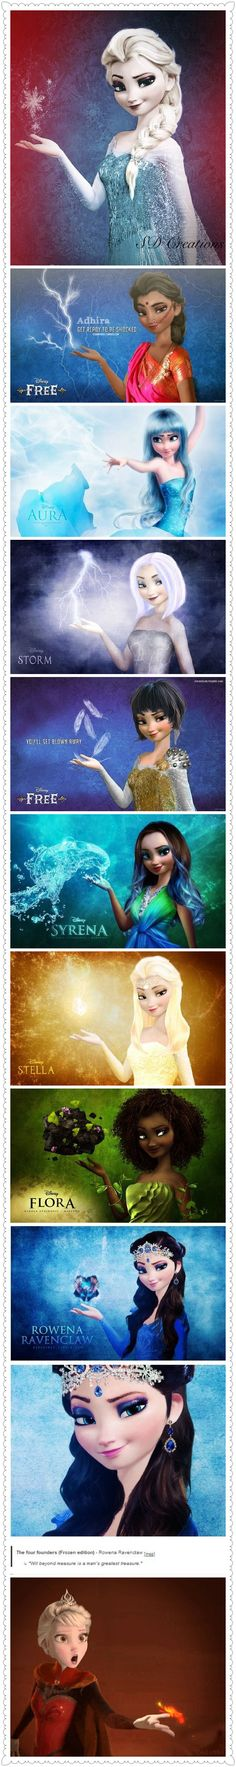 I'm obsessed with elsa's different elements at the moment!!!!